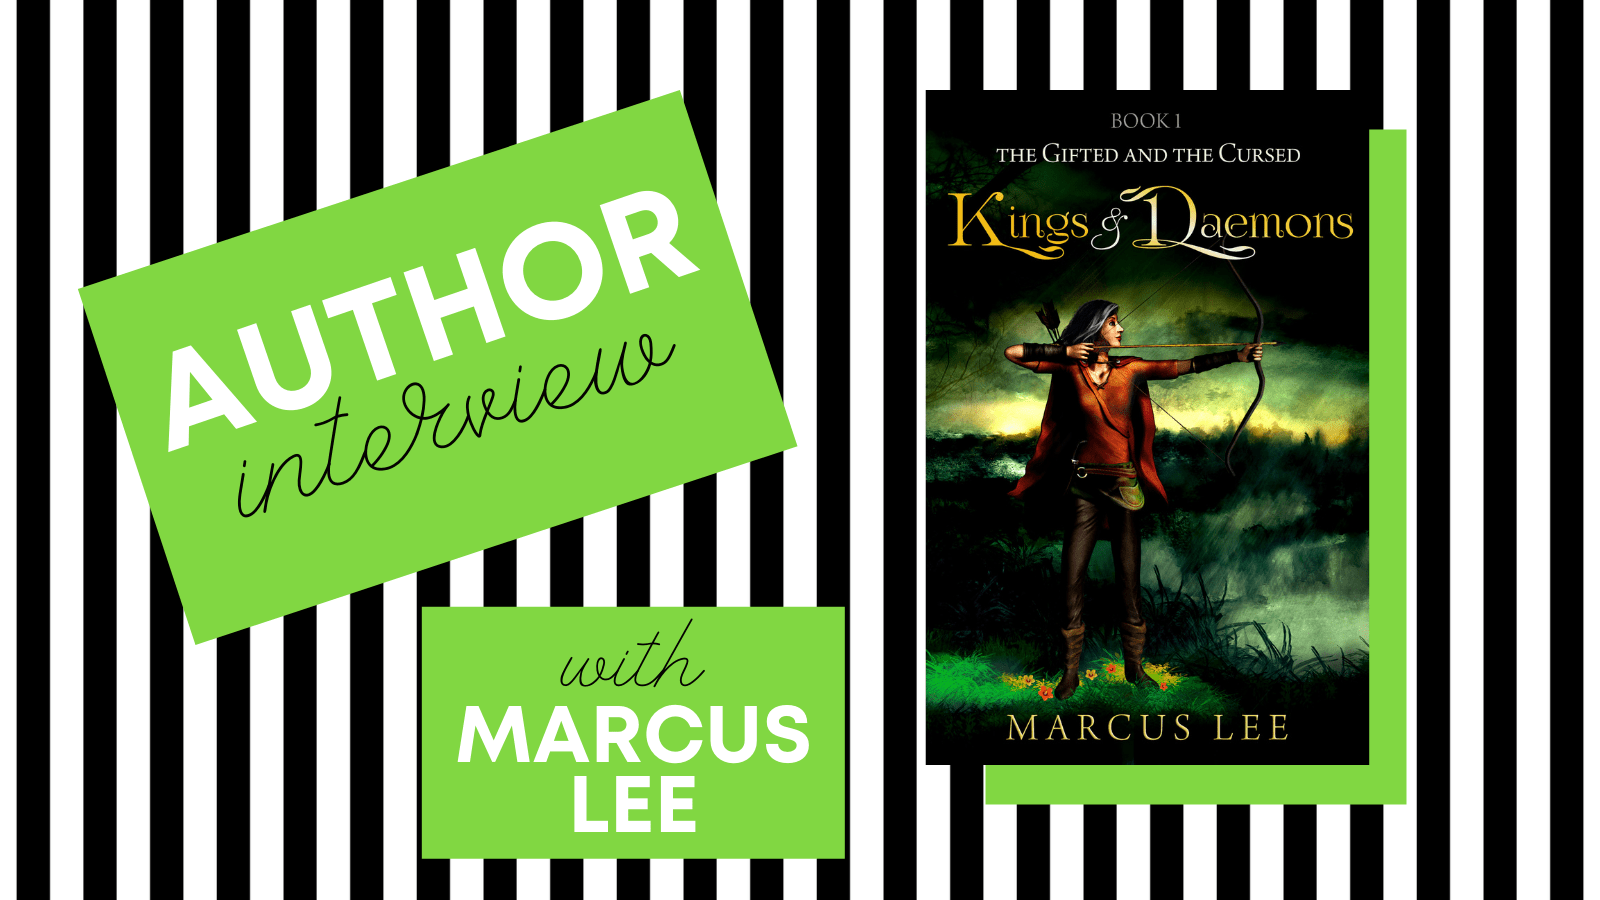 Author interview with Marcus Lee